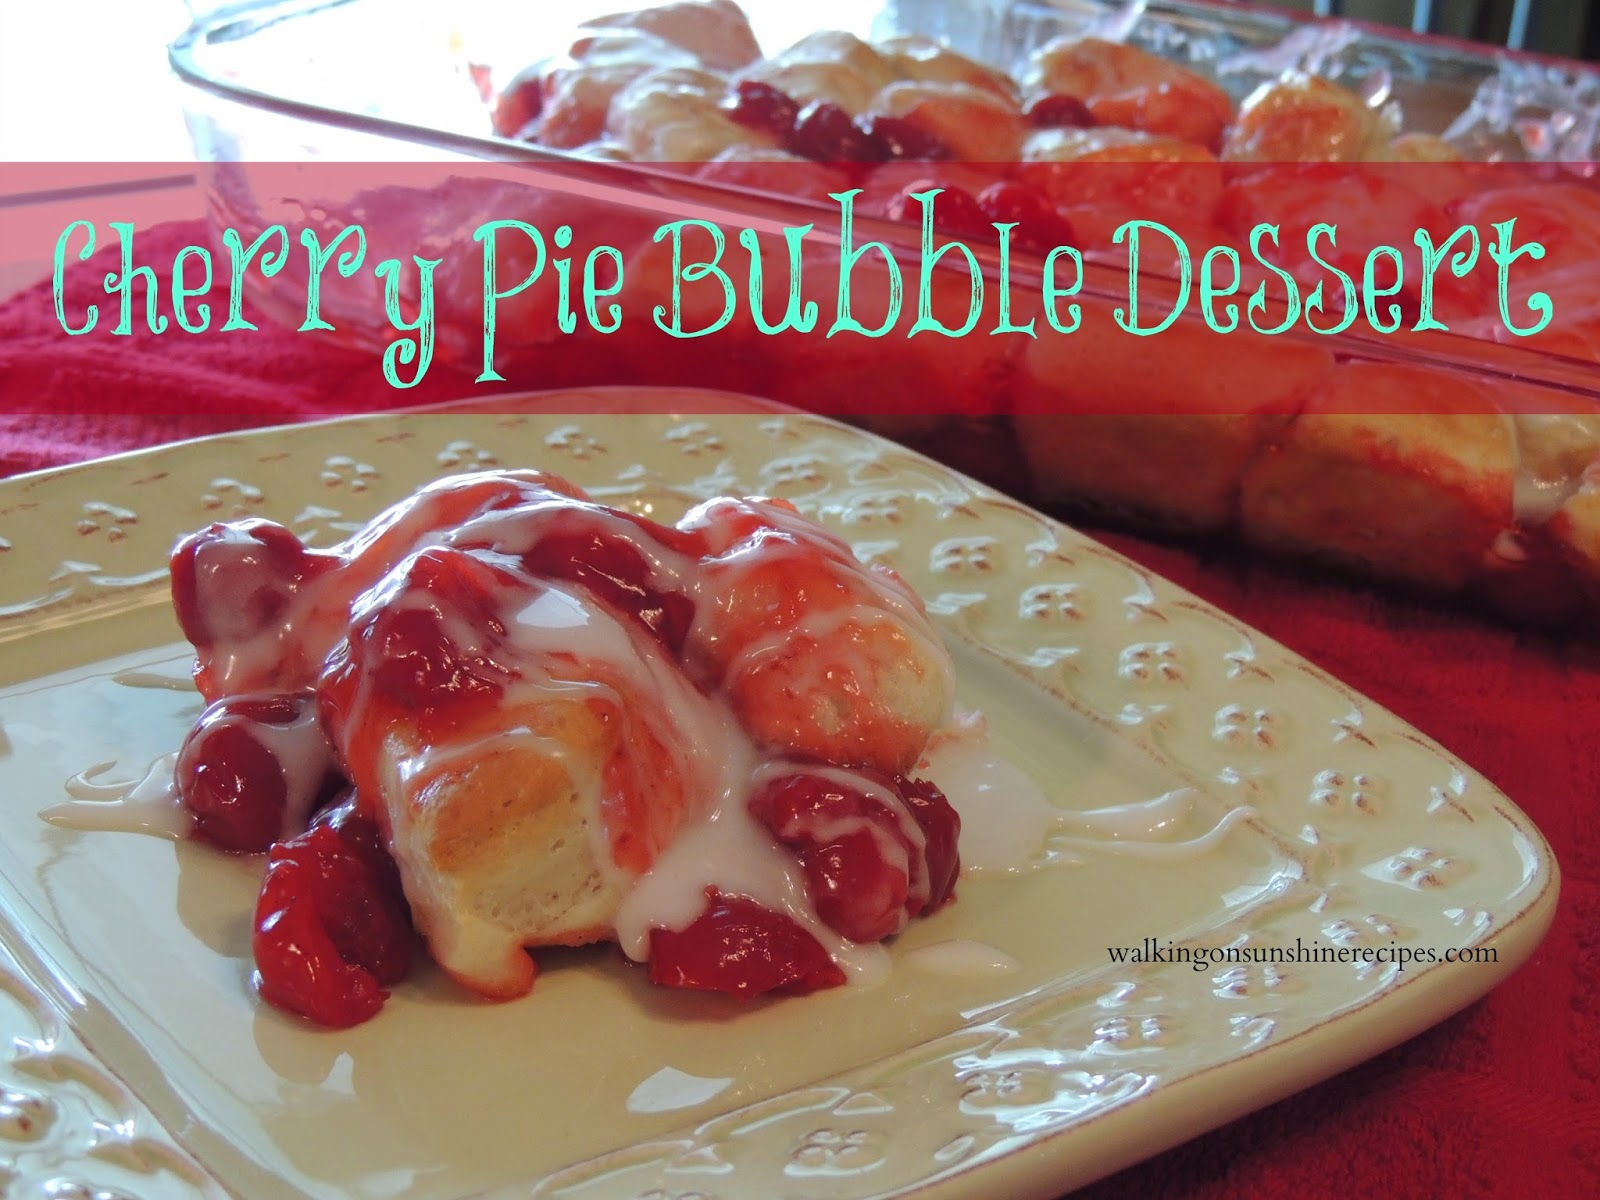 An easy and delicious dessert or breakfast recipe that uses canned biscuits and cherry pie filling from Walking on Sunshine Recipes.